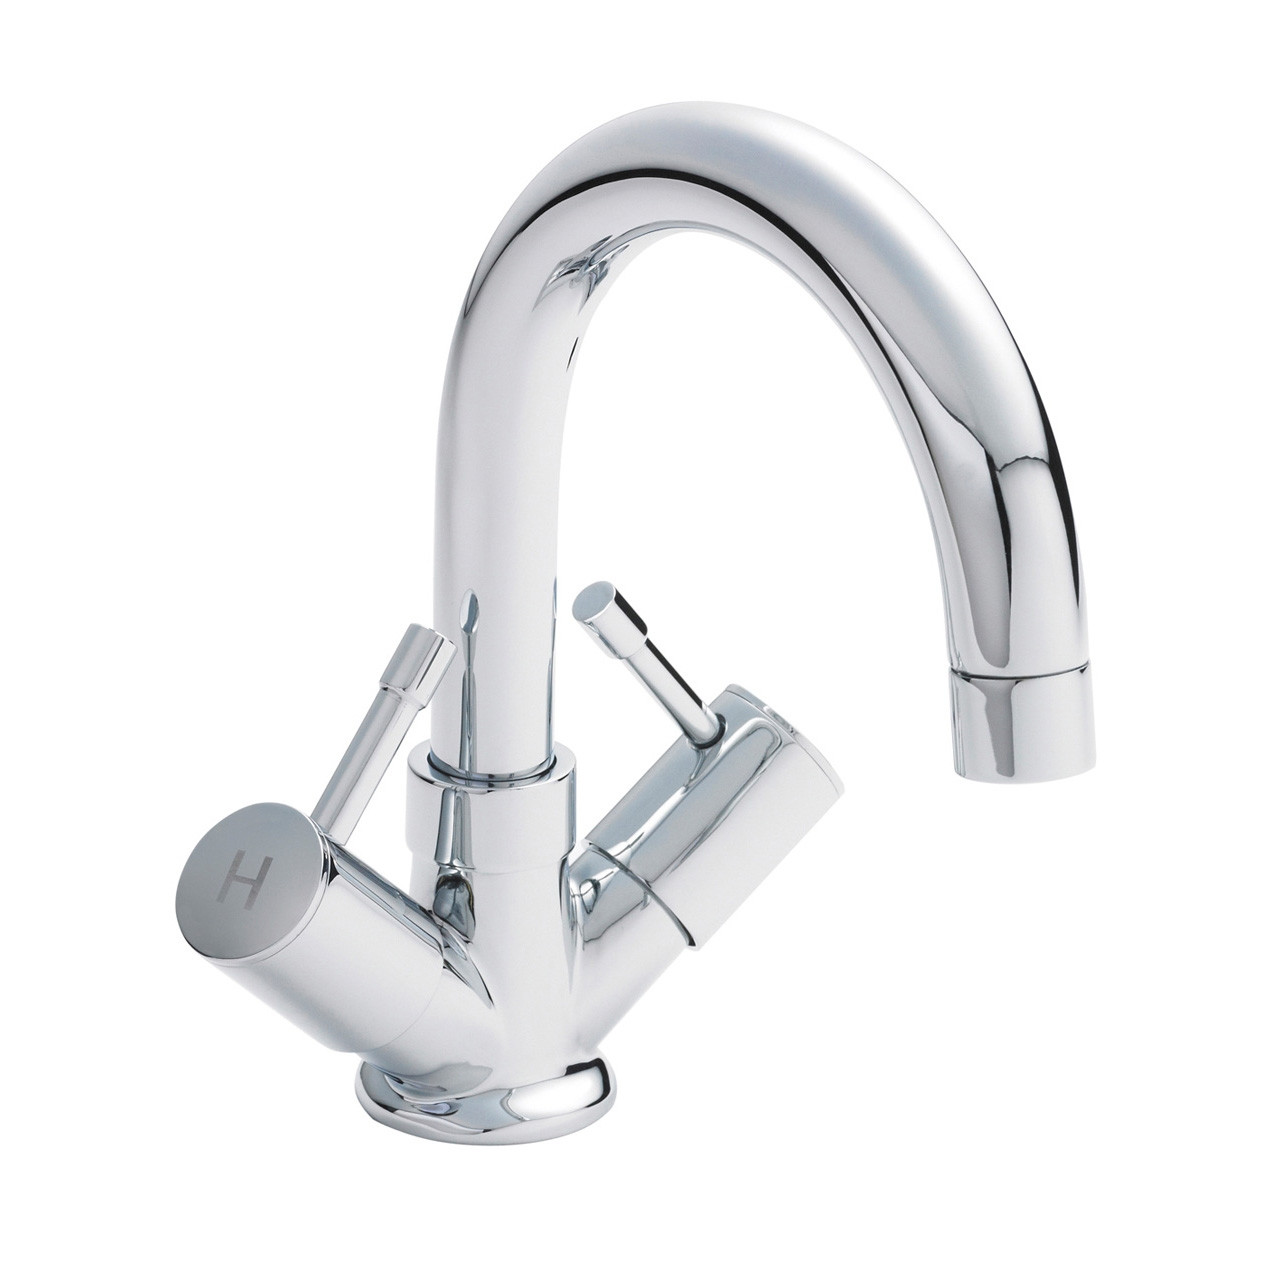 Premier Series 2 Econ Mono Swivel Spout with Waste - FJ317